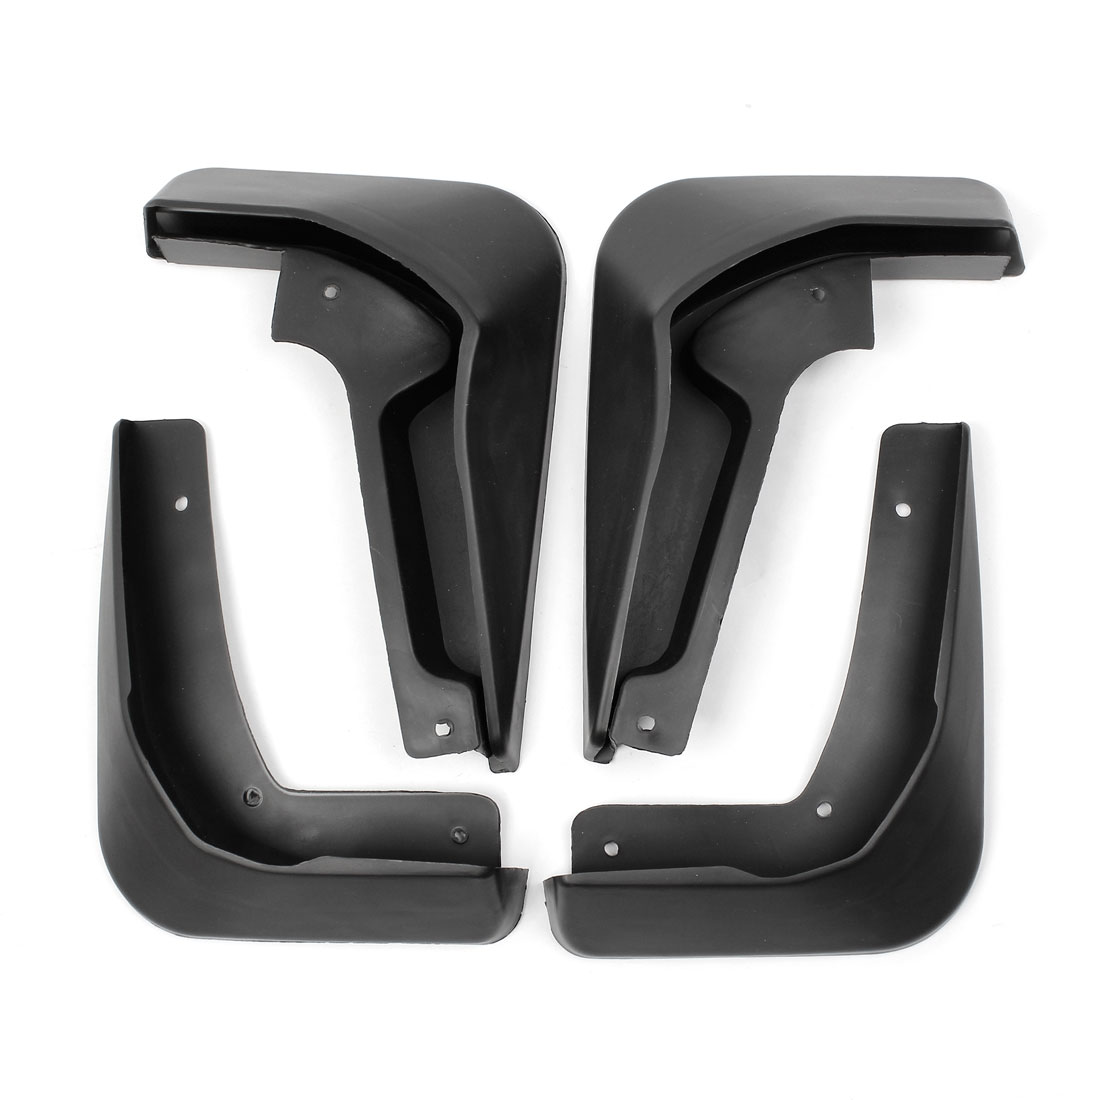 Black Mud Flaps Splash Guard Mudguard Front Rear Full Set for 2012 Ford Focus